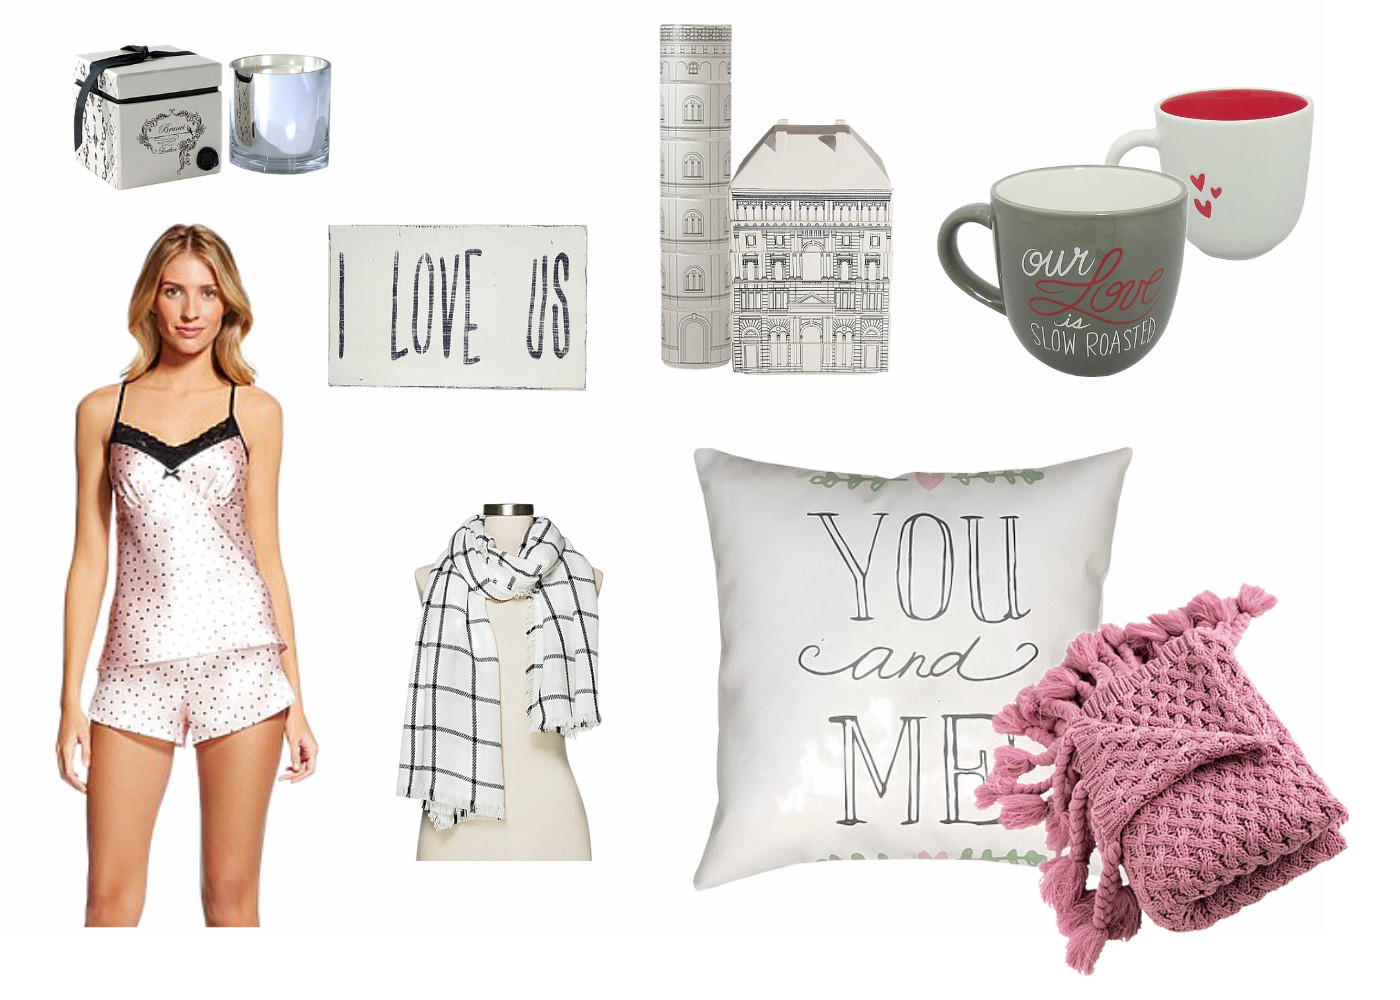 8 Sure Fire Valentines Day Gifts that Will Leave Her Feeling Loved without Resorting to the Standard Box of Chocolates. The best part is whether your relationship is old or new there is something here for every stage of your love.